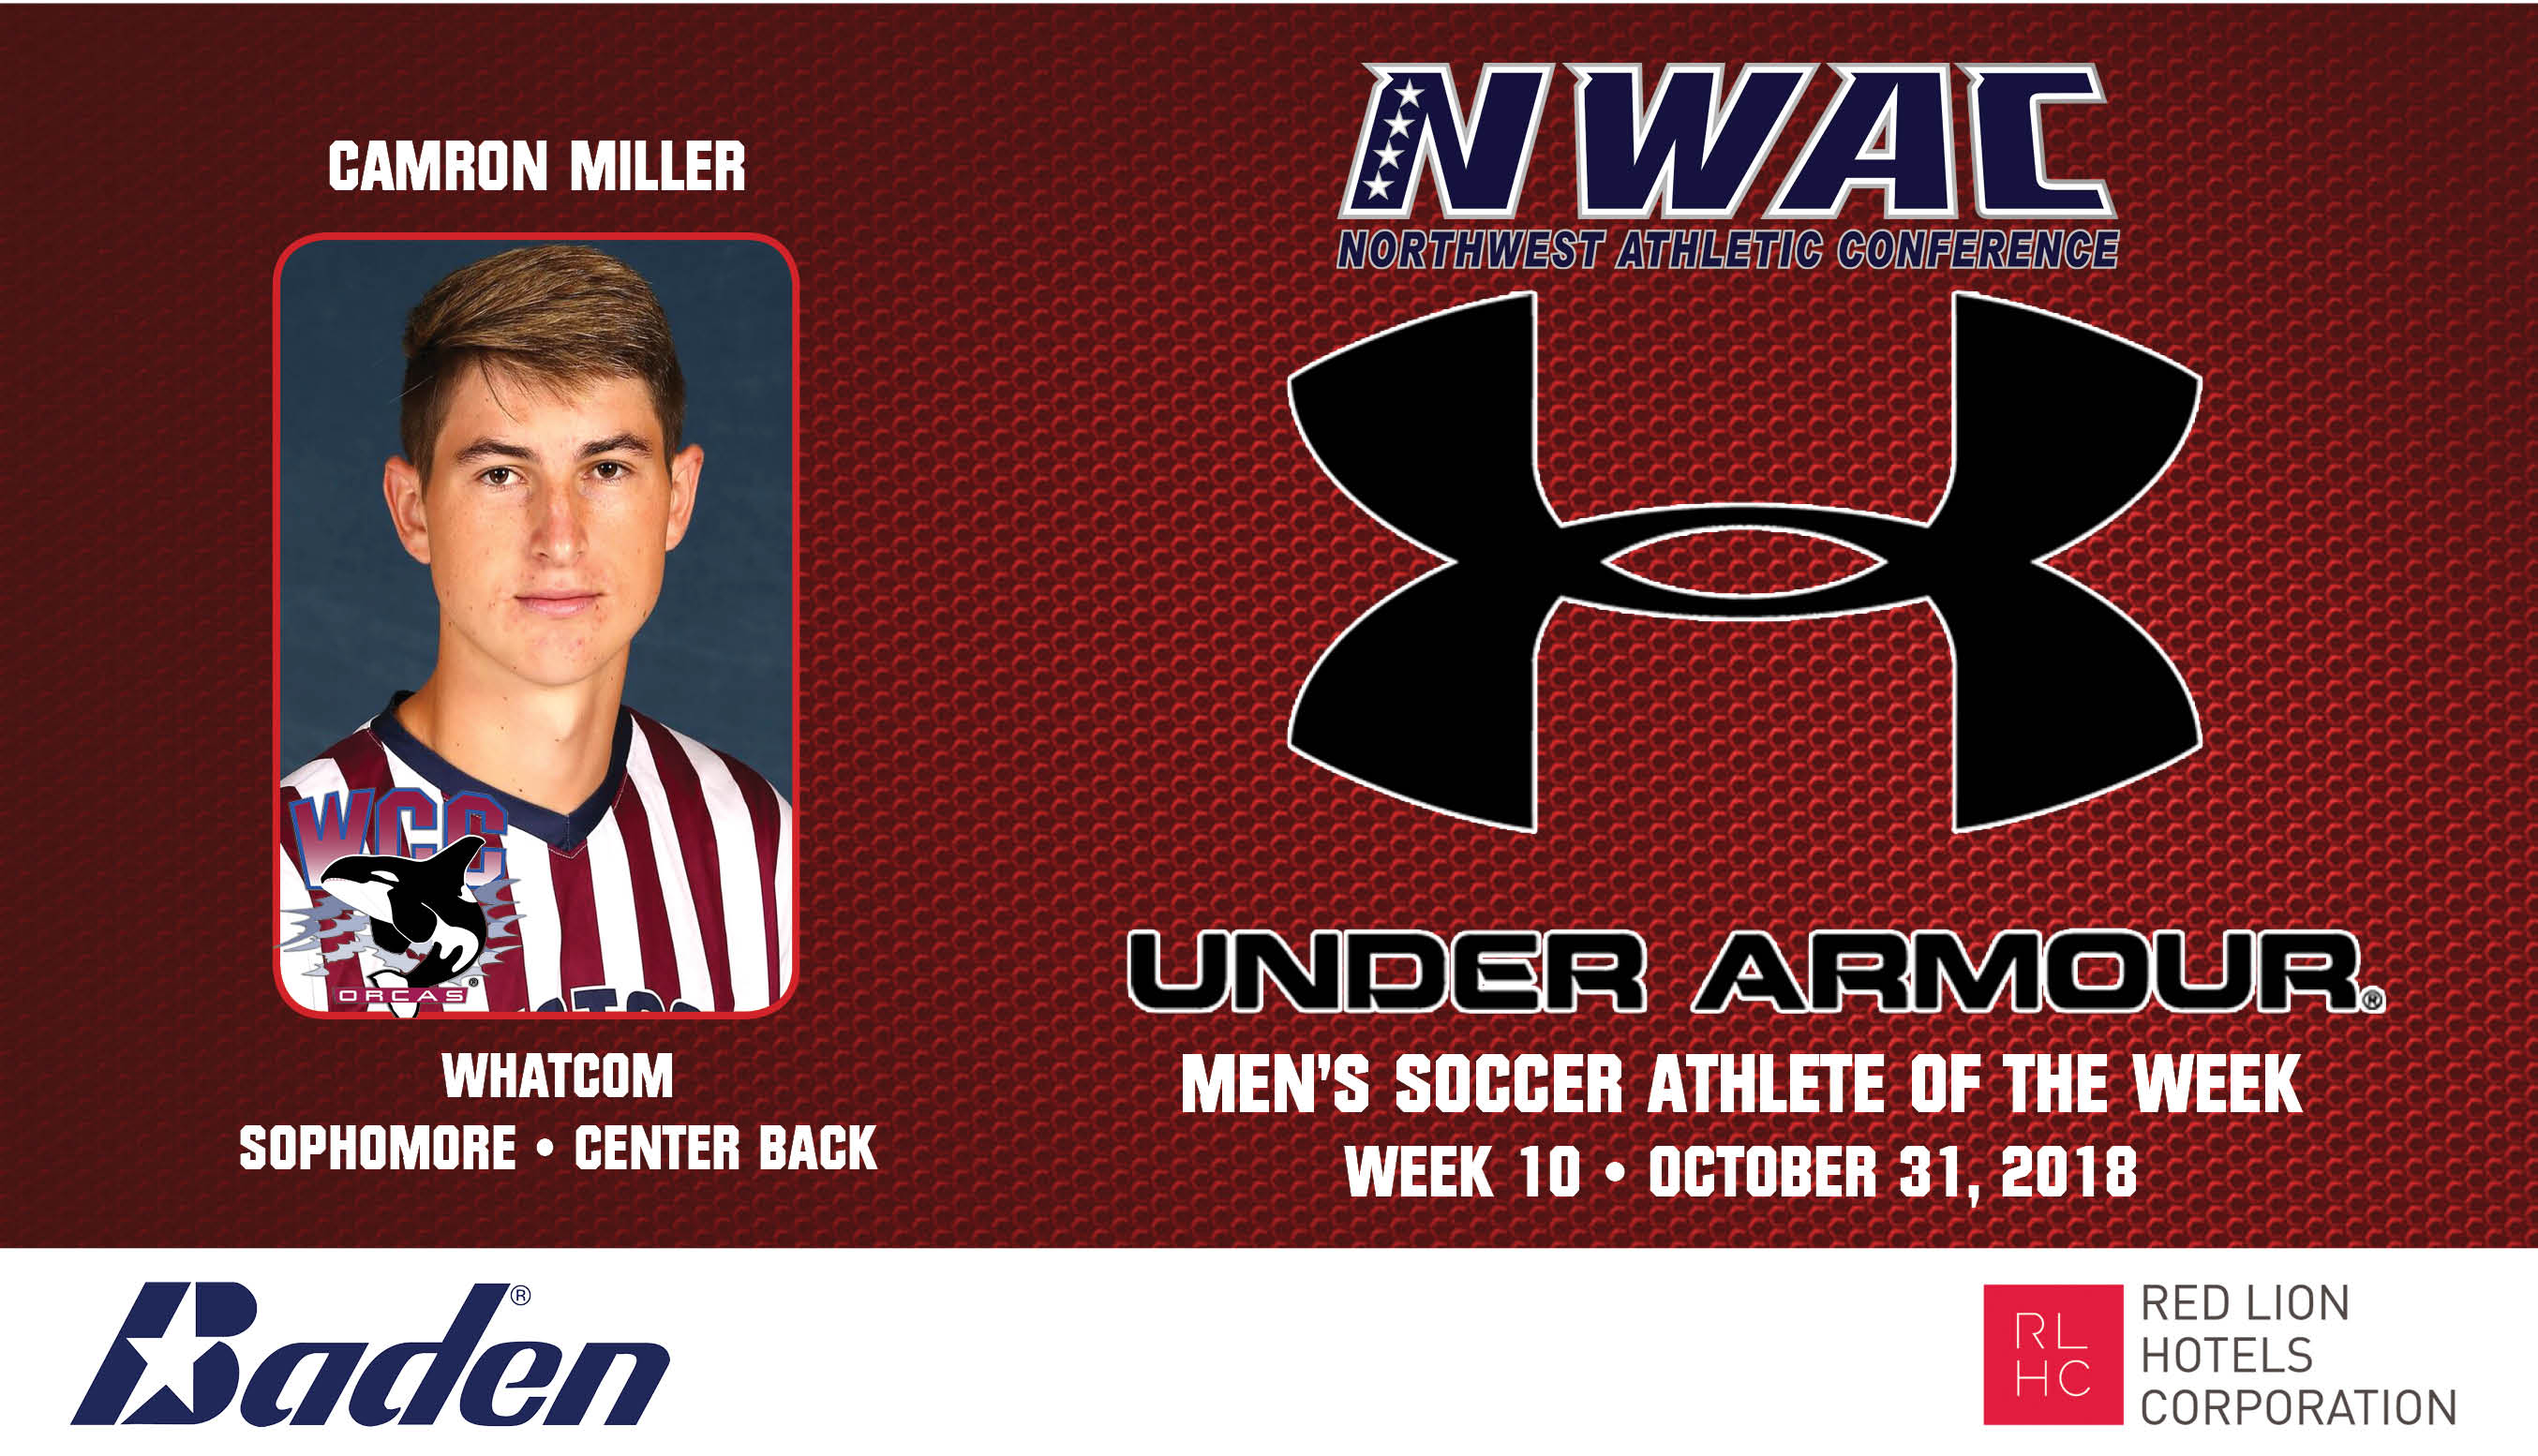 Camron Miller Armour Player of the Week graphic